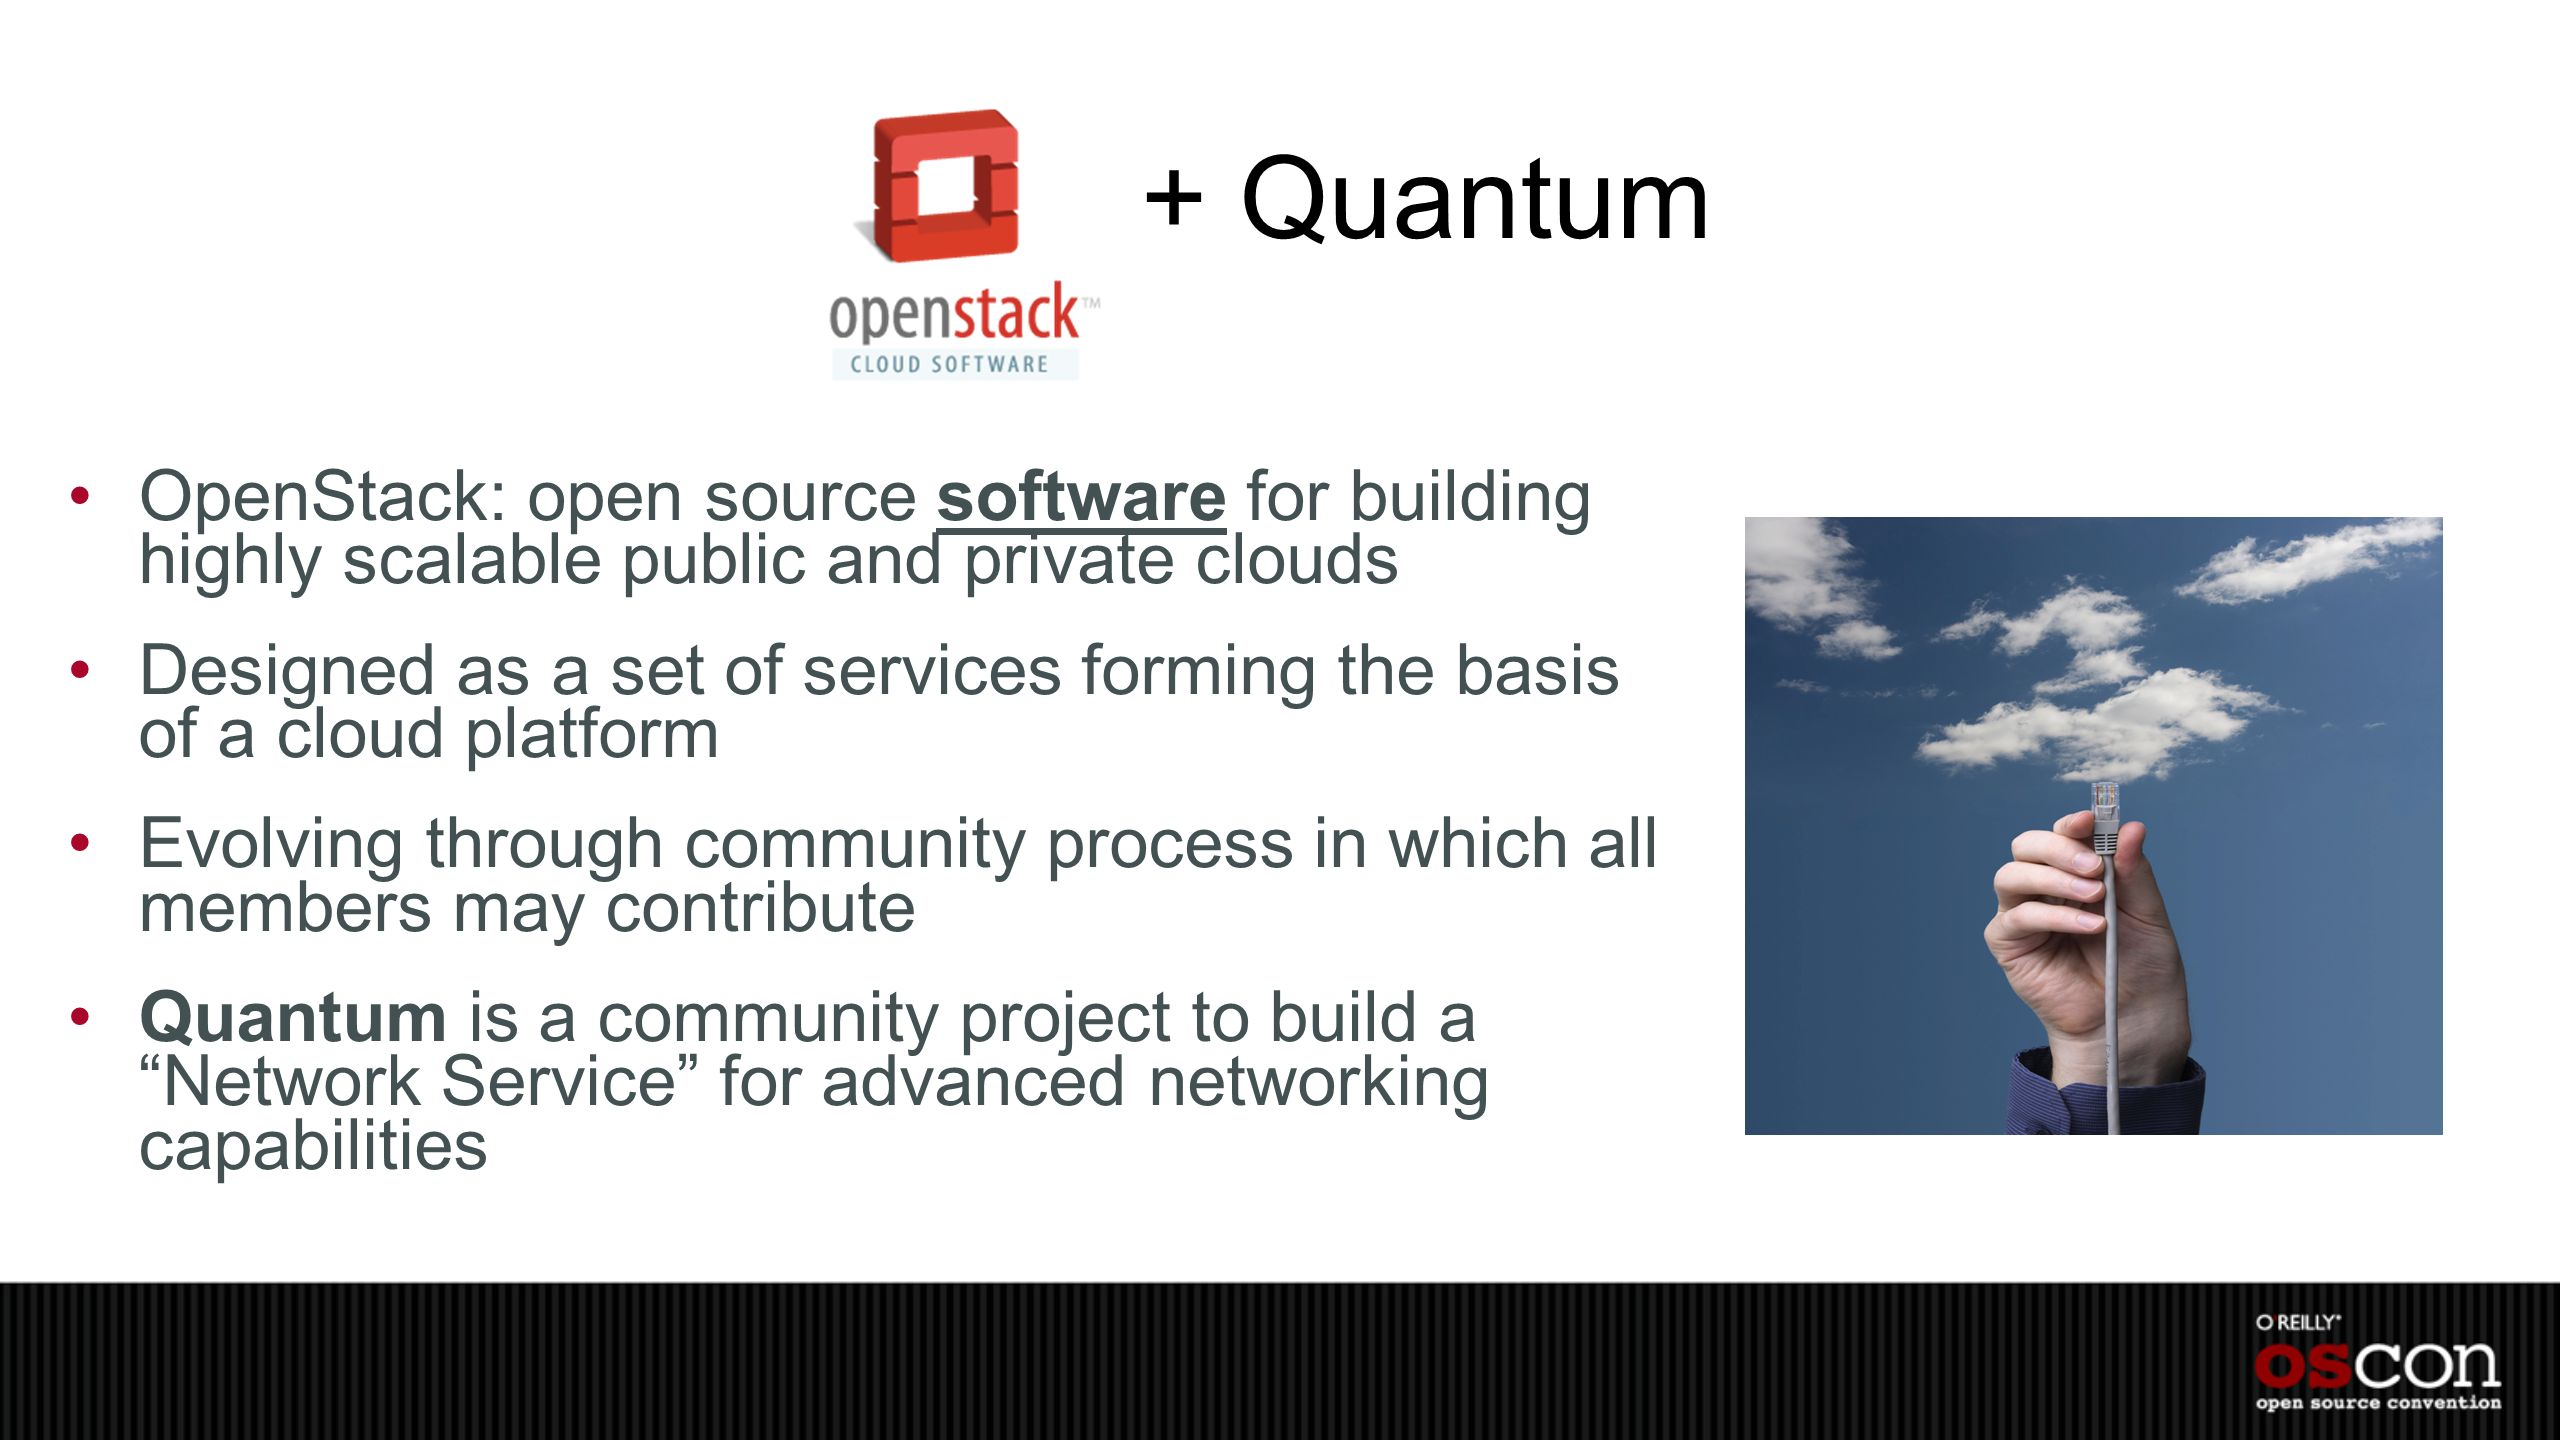 + Quantum OpenStack: open source software for building highly scalable public and private clouds.